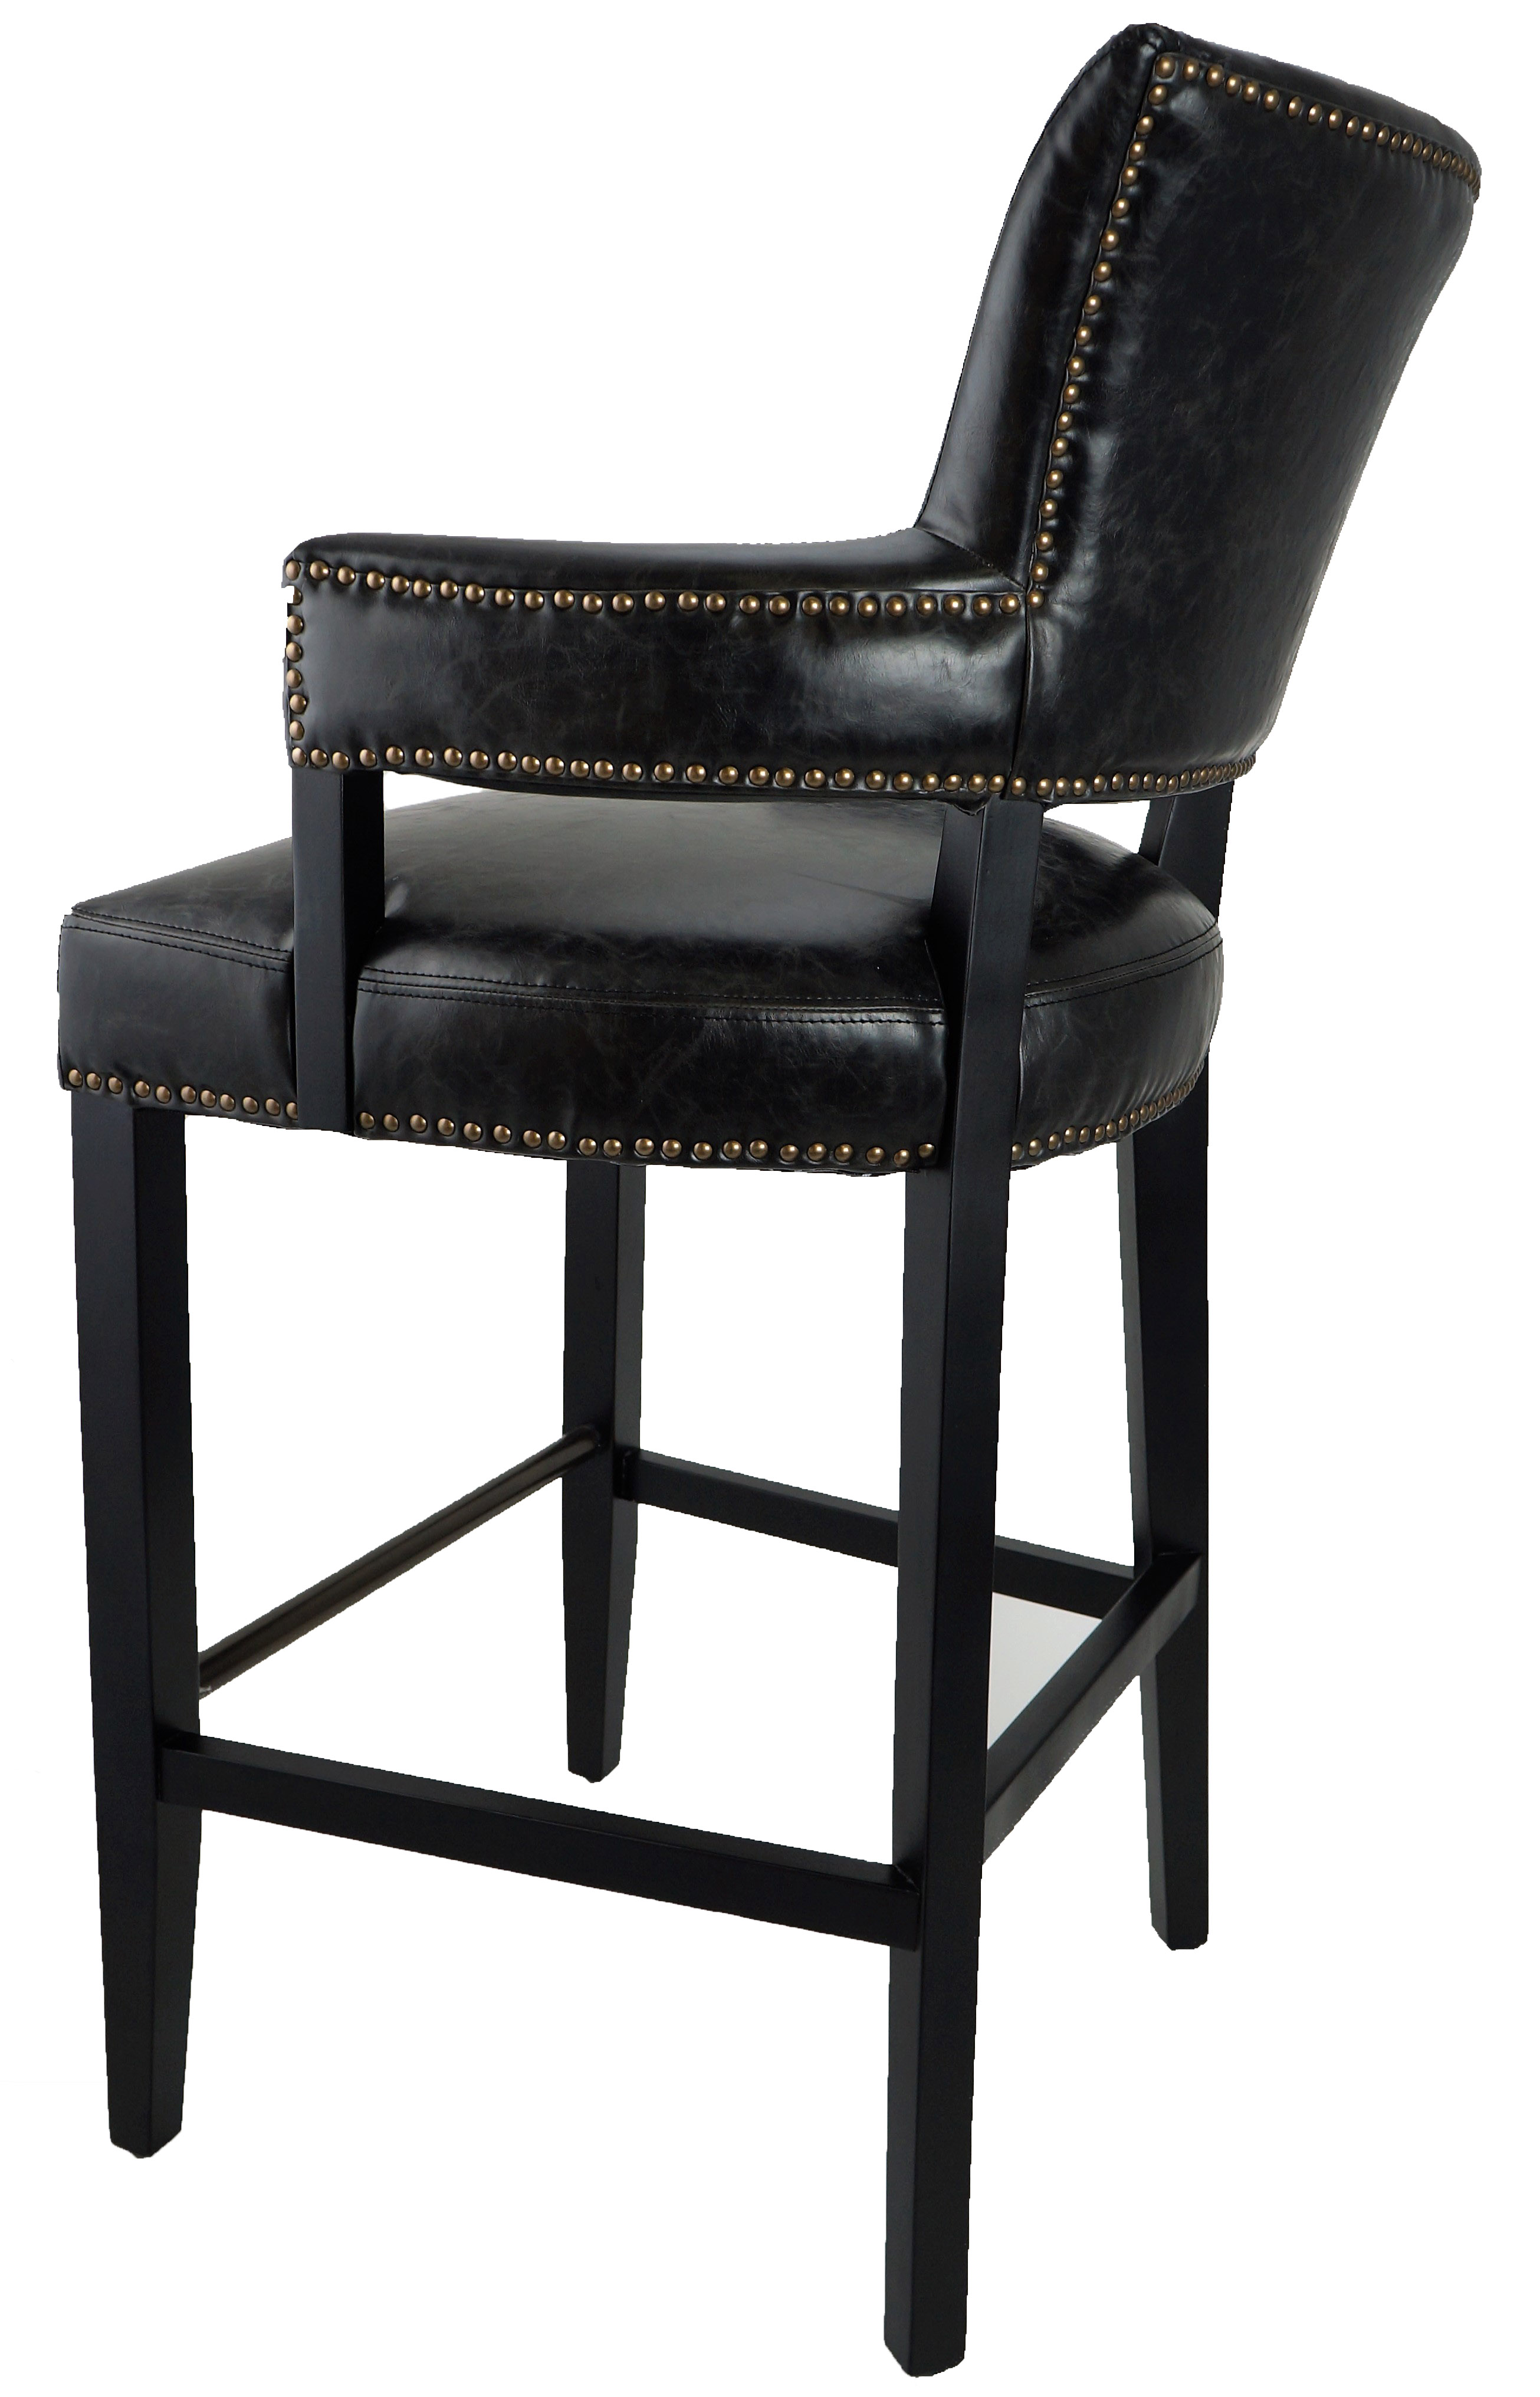 More Clearance Black Majestic Arm Bar Stool Only 1